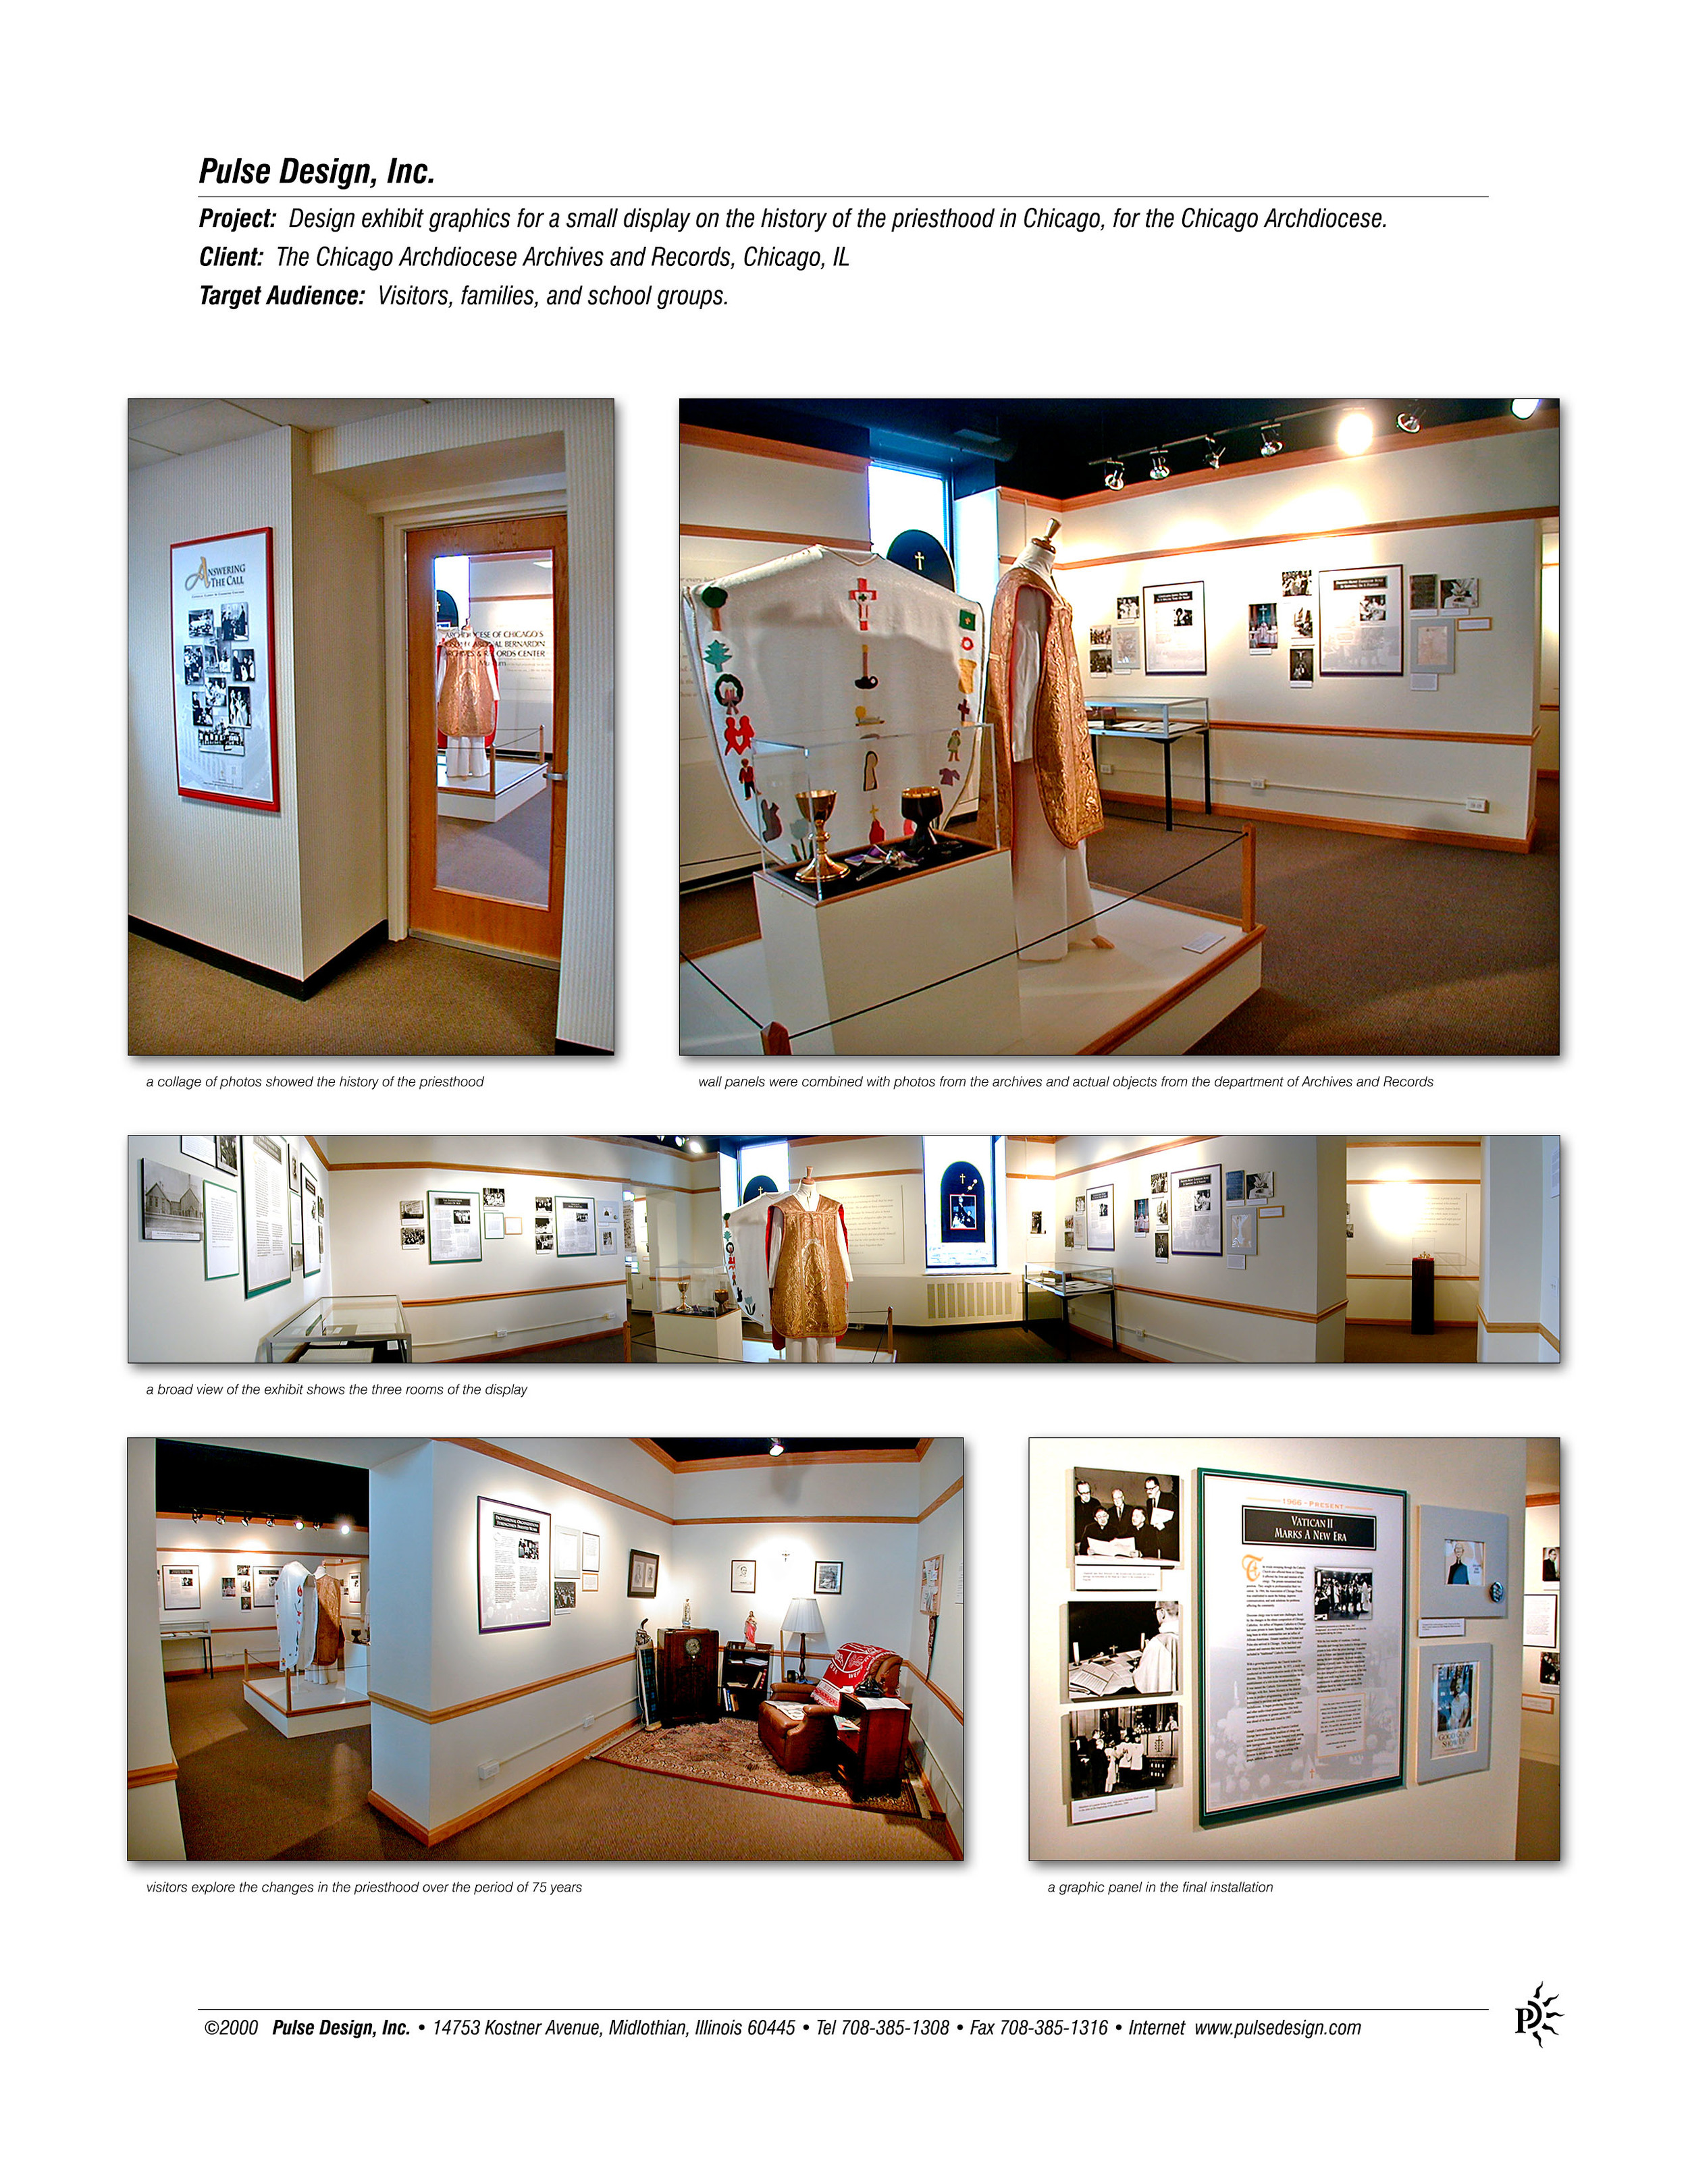 Archdiocese-Chicago-Answering-The-Call-Exhibit-Pulse-Design-Inc.jpg